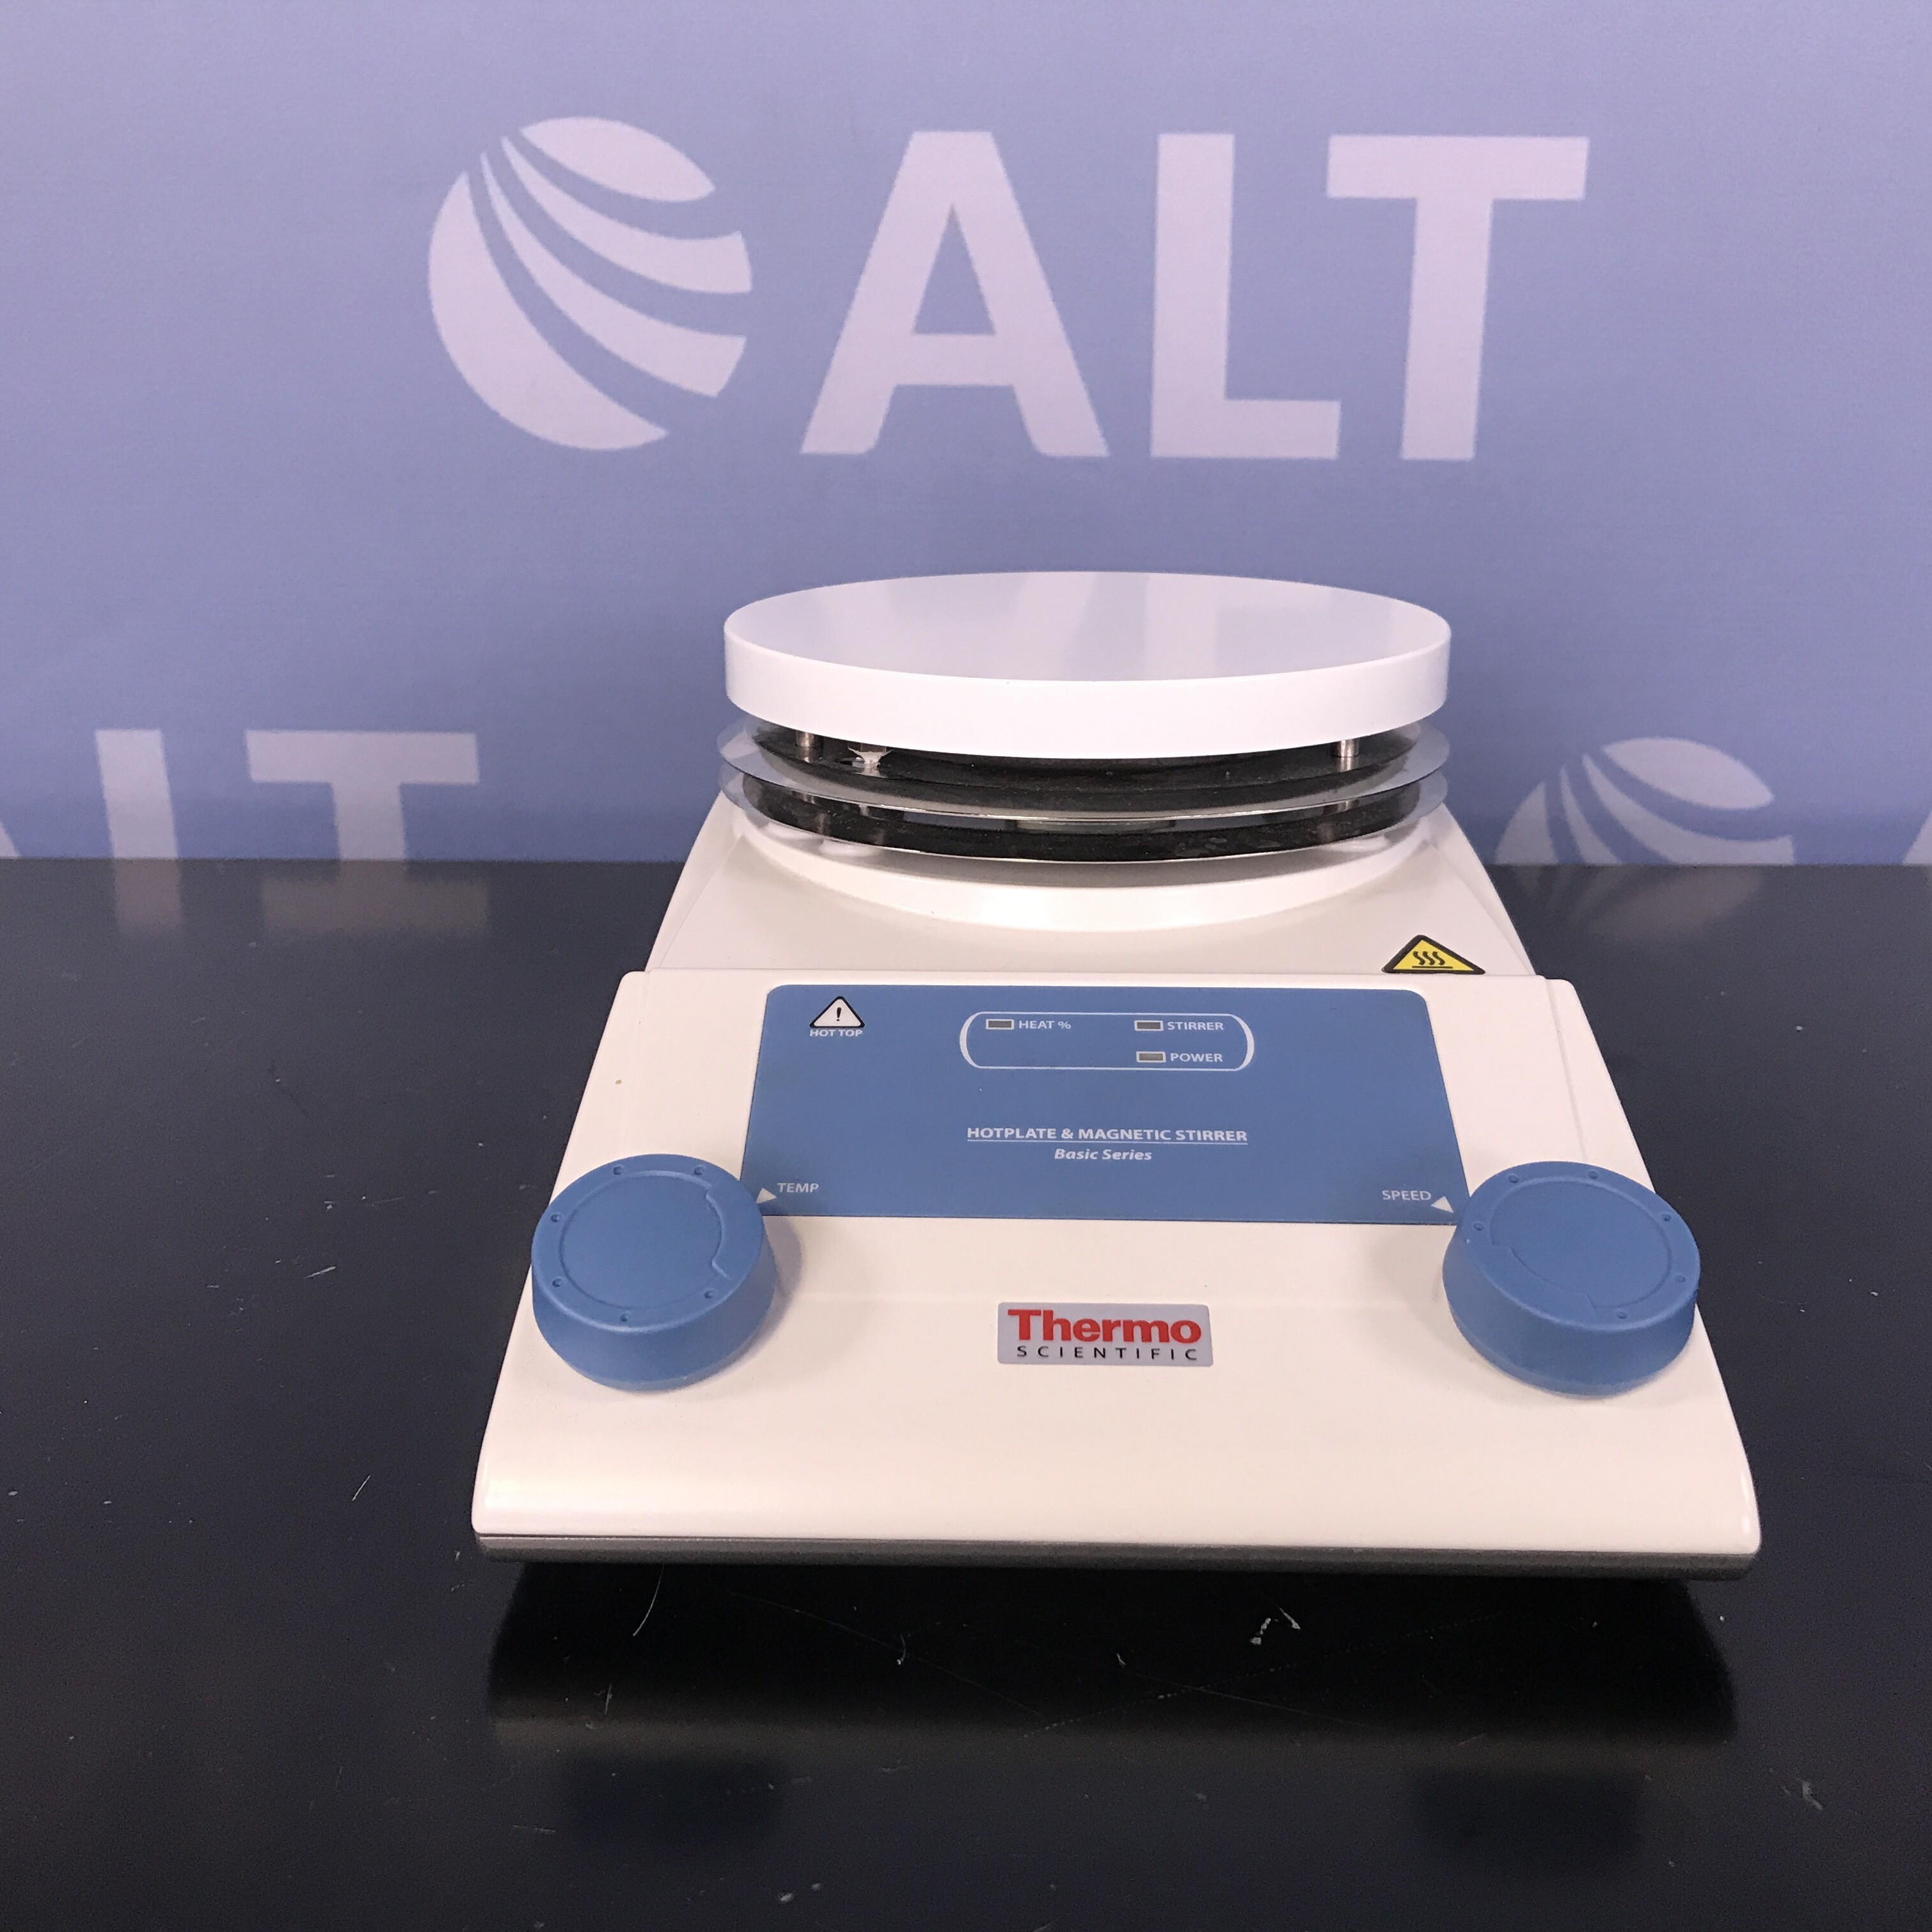 Thermo Scientific RT2 Basic Hotplate & Magnetic Stirrer  Image